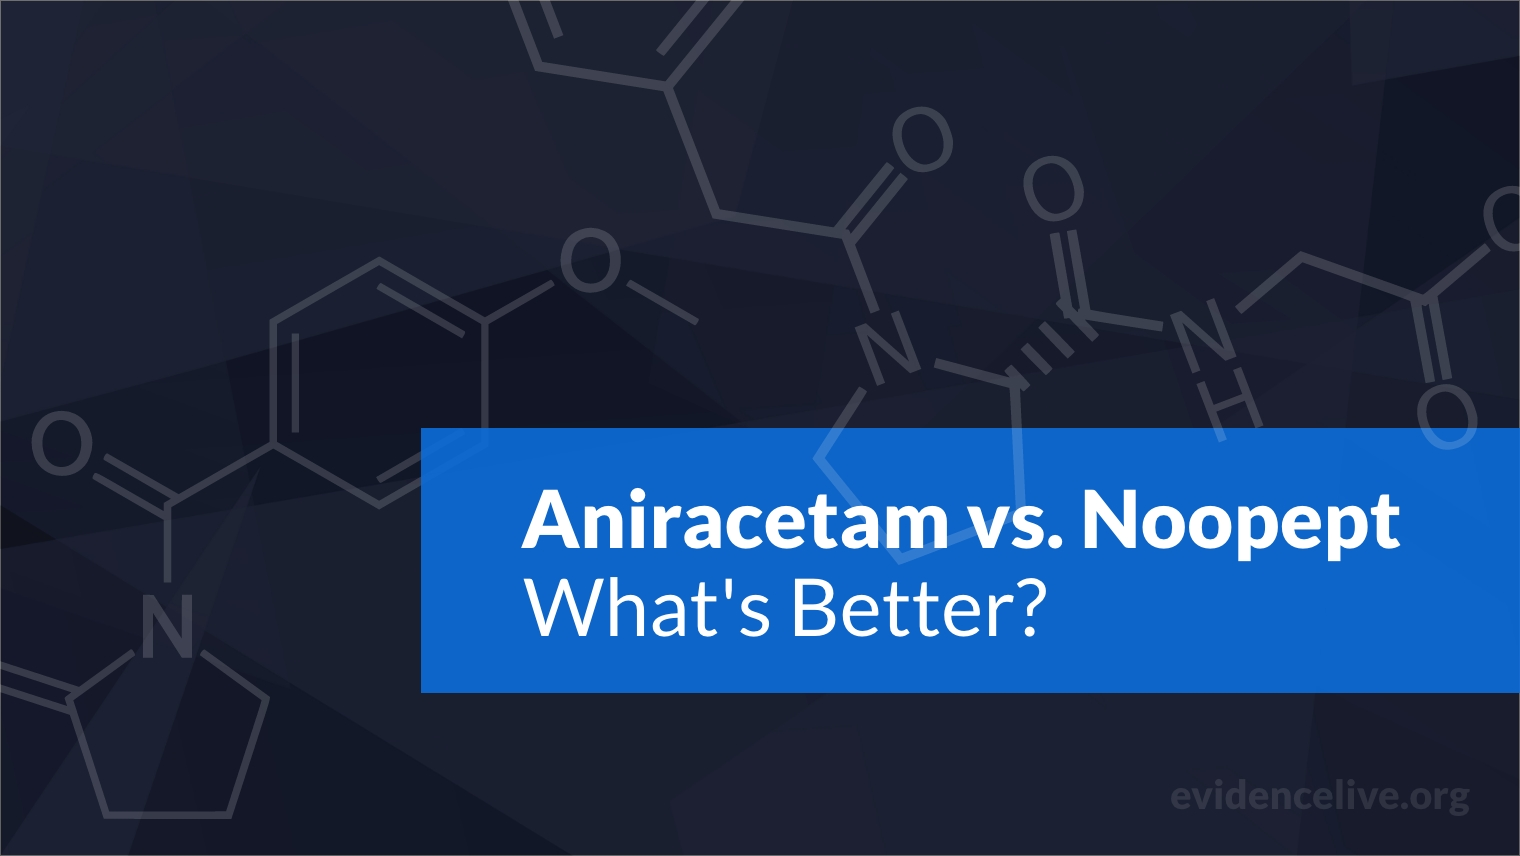 Aniracetam vs. Noopept: Differences and What's Better